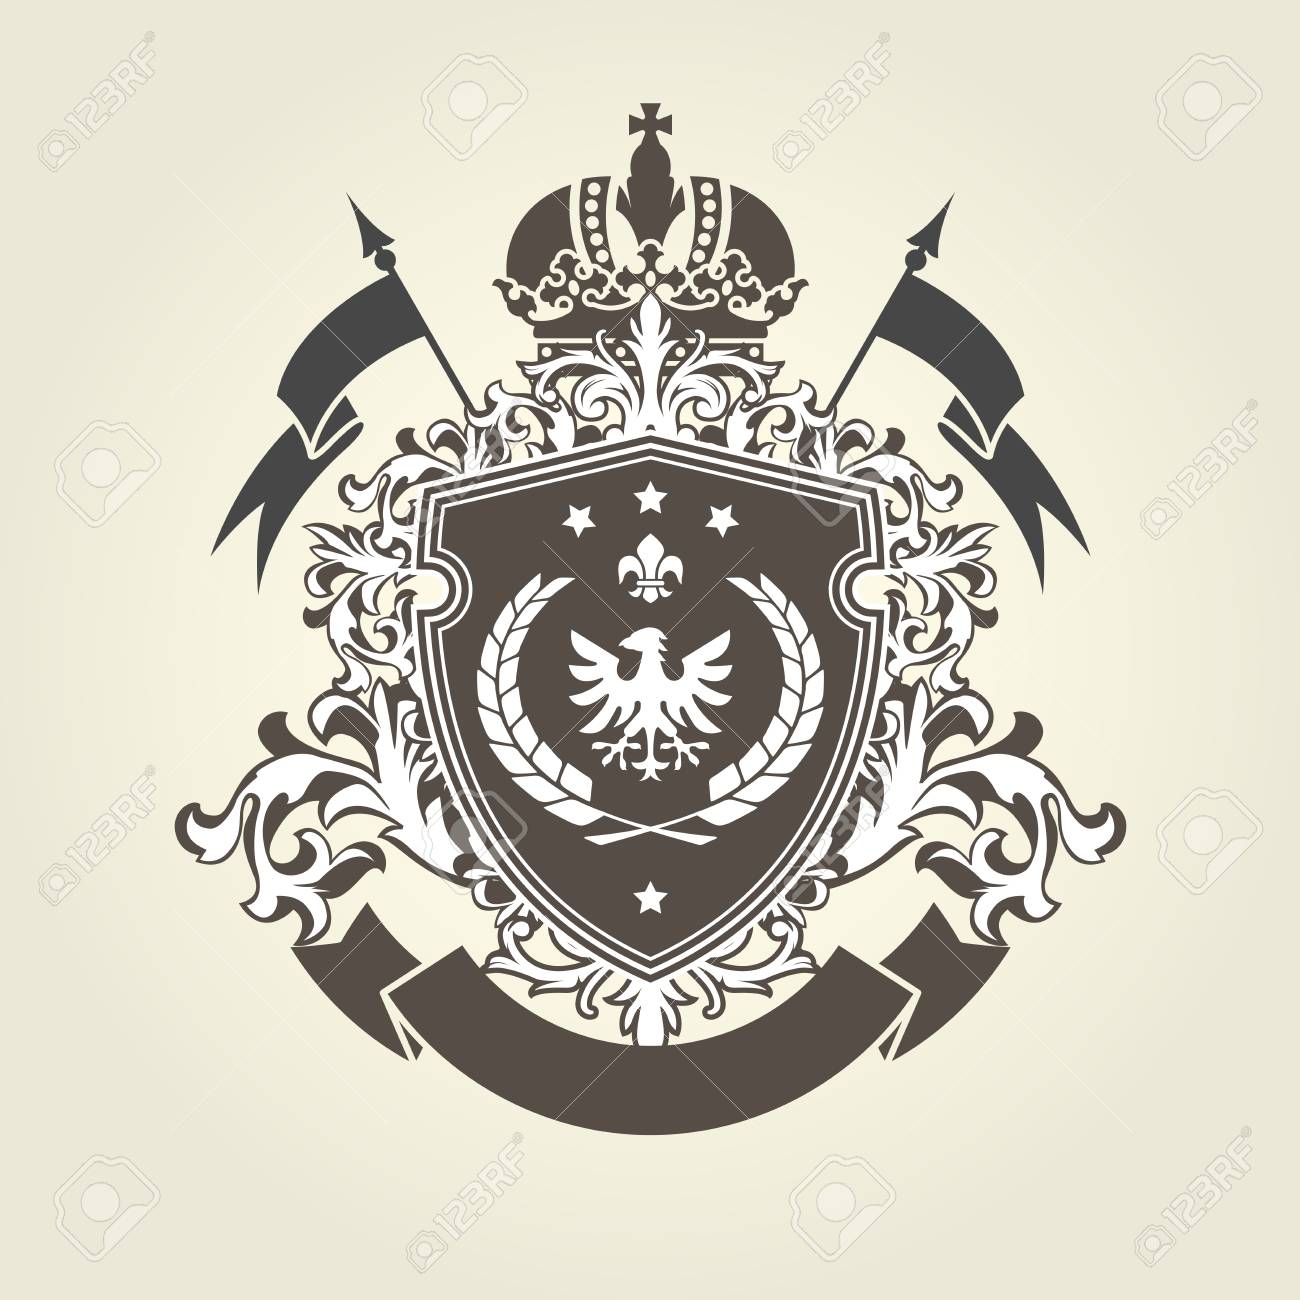 Royal Coat Of Arms Heraldic Blazon With Crown And Shield With